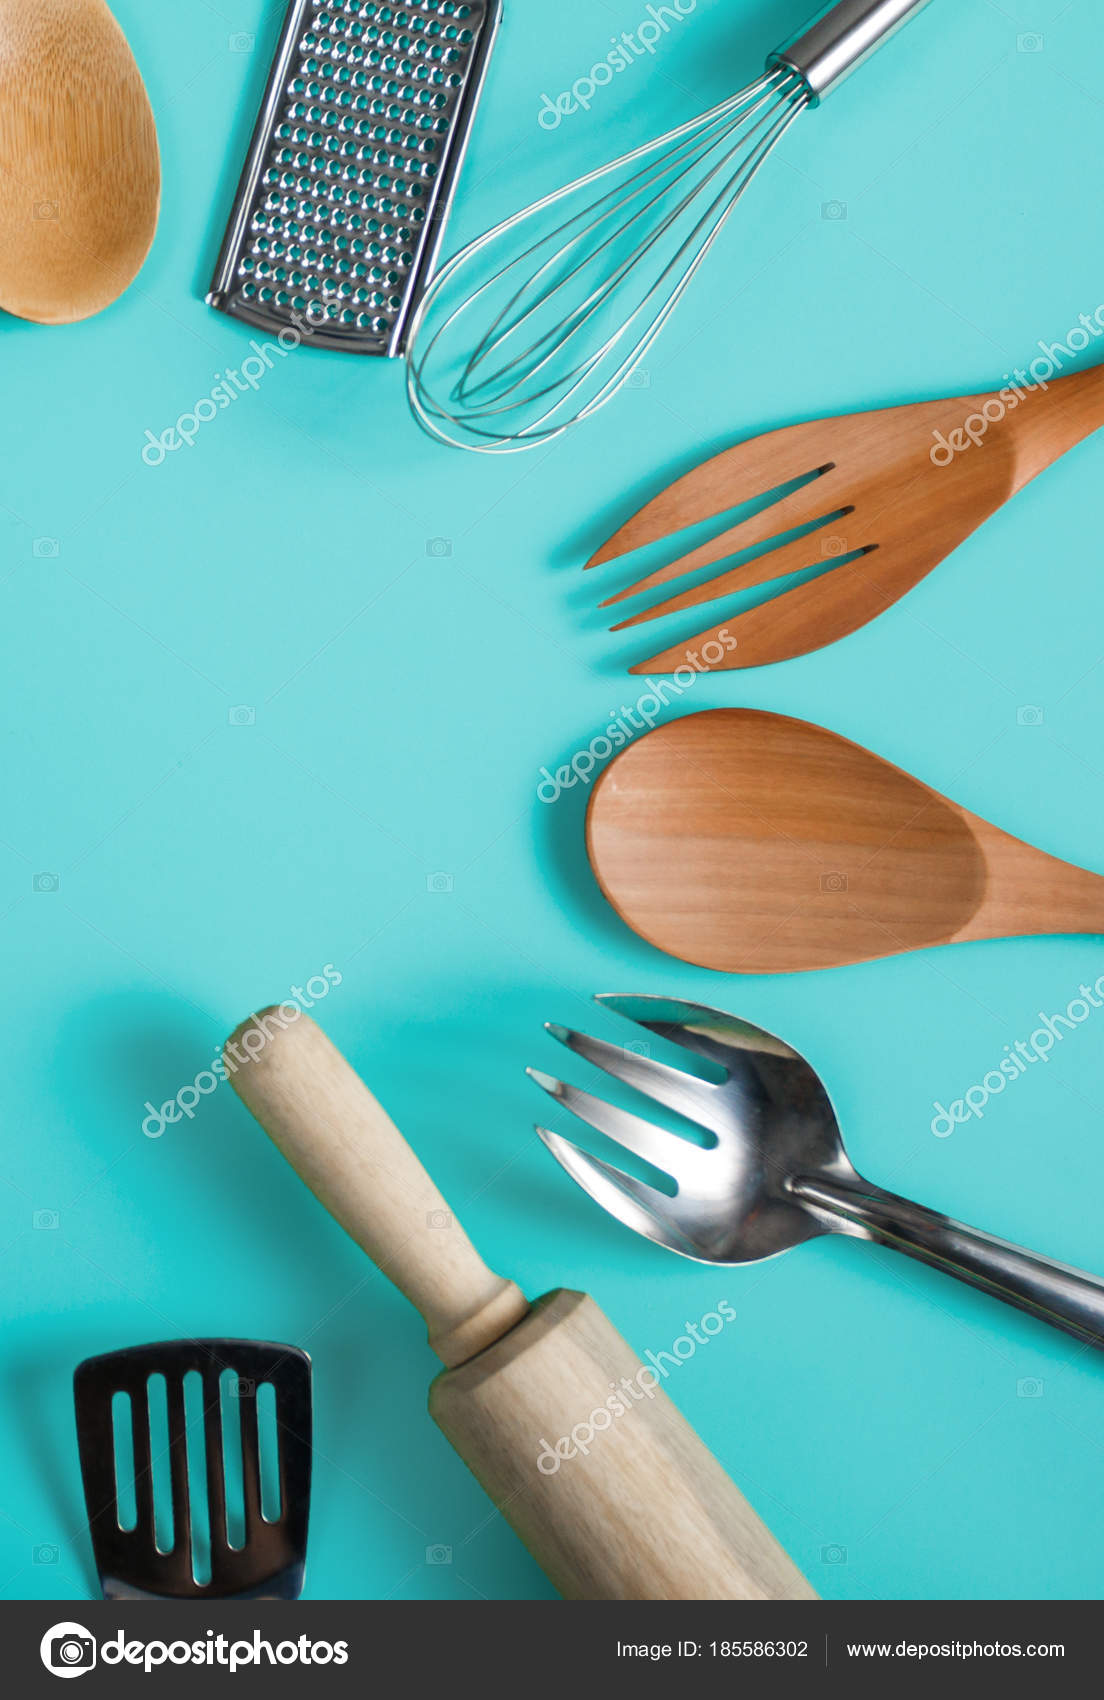 Close Up Portrait Of Group Kitchen Utensils On Blue Pastel Background Photo By Odua